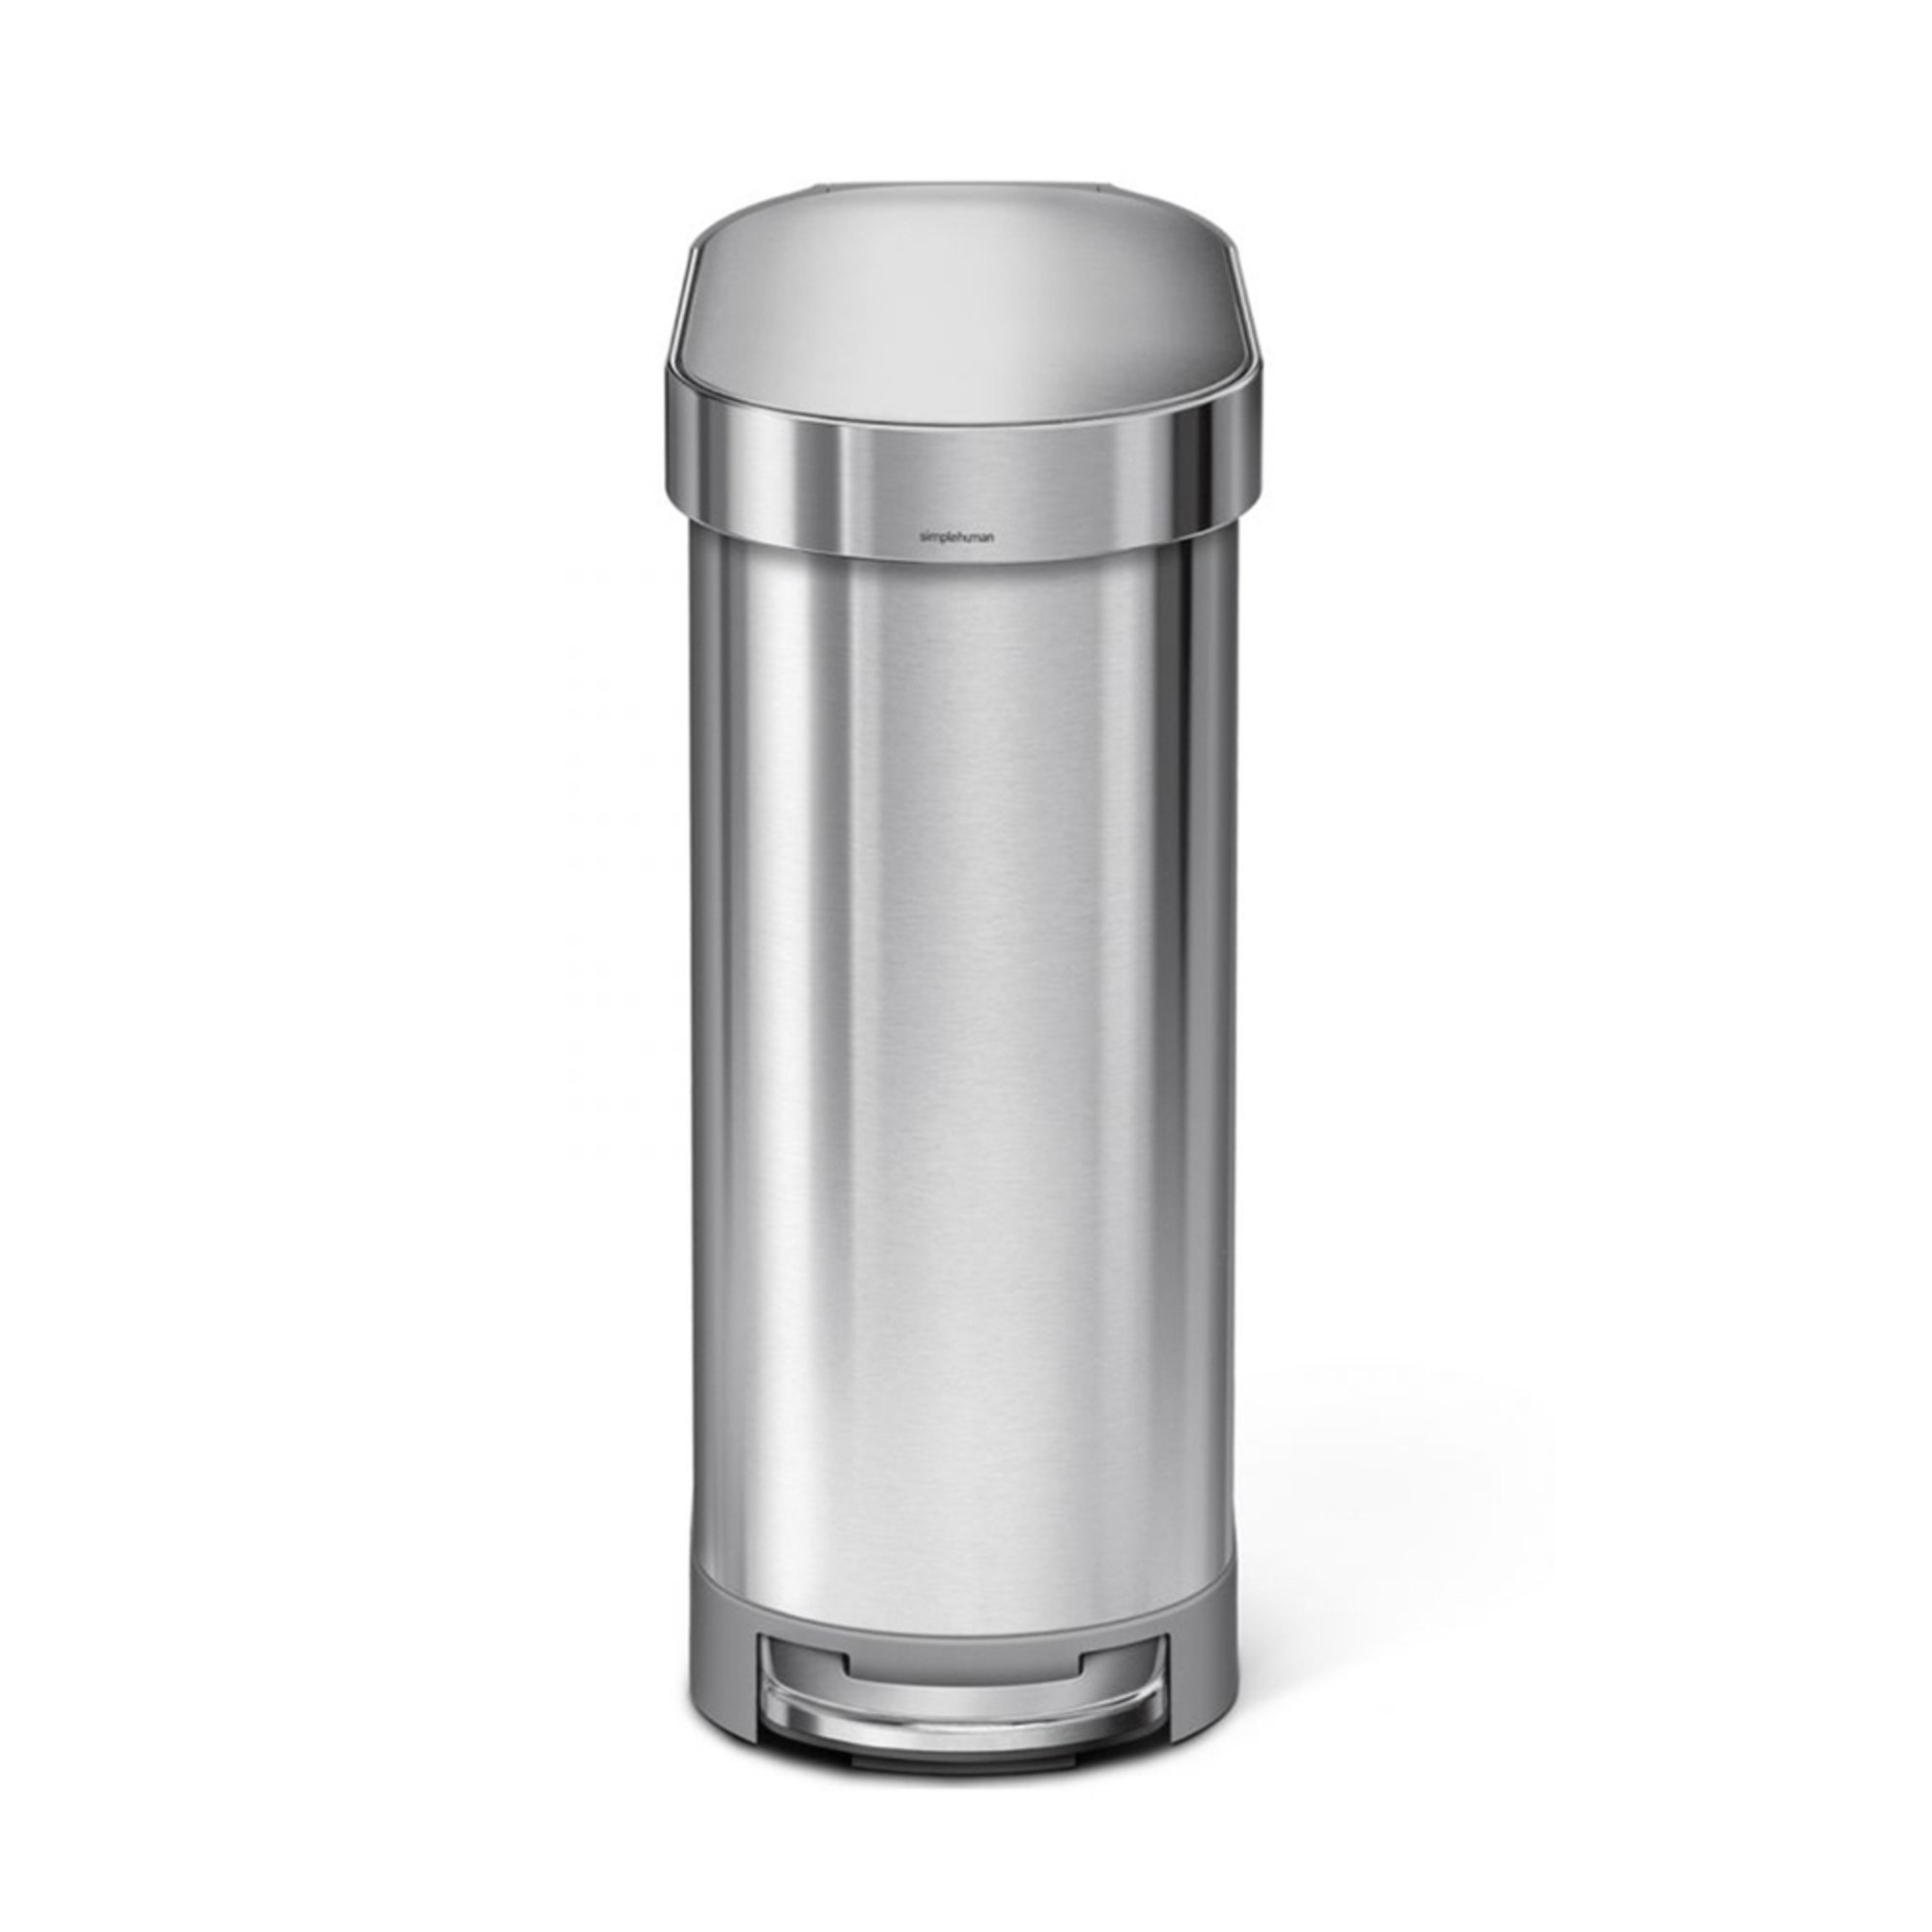 simplehuman 45 liter brushed stainless steel slim step can n liner trash cans recycling. Black Bedroom Furniture Sets. Home Design Ideas